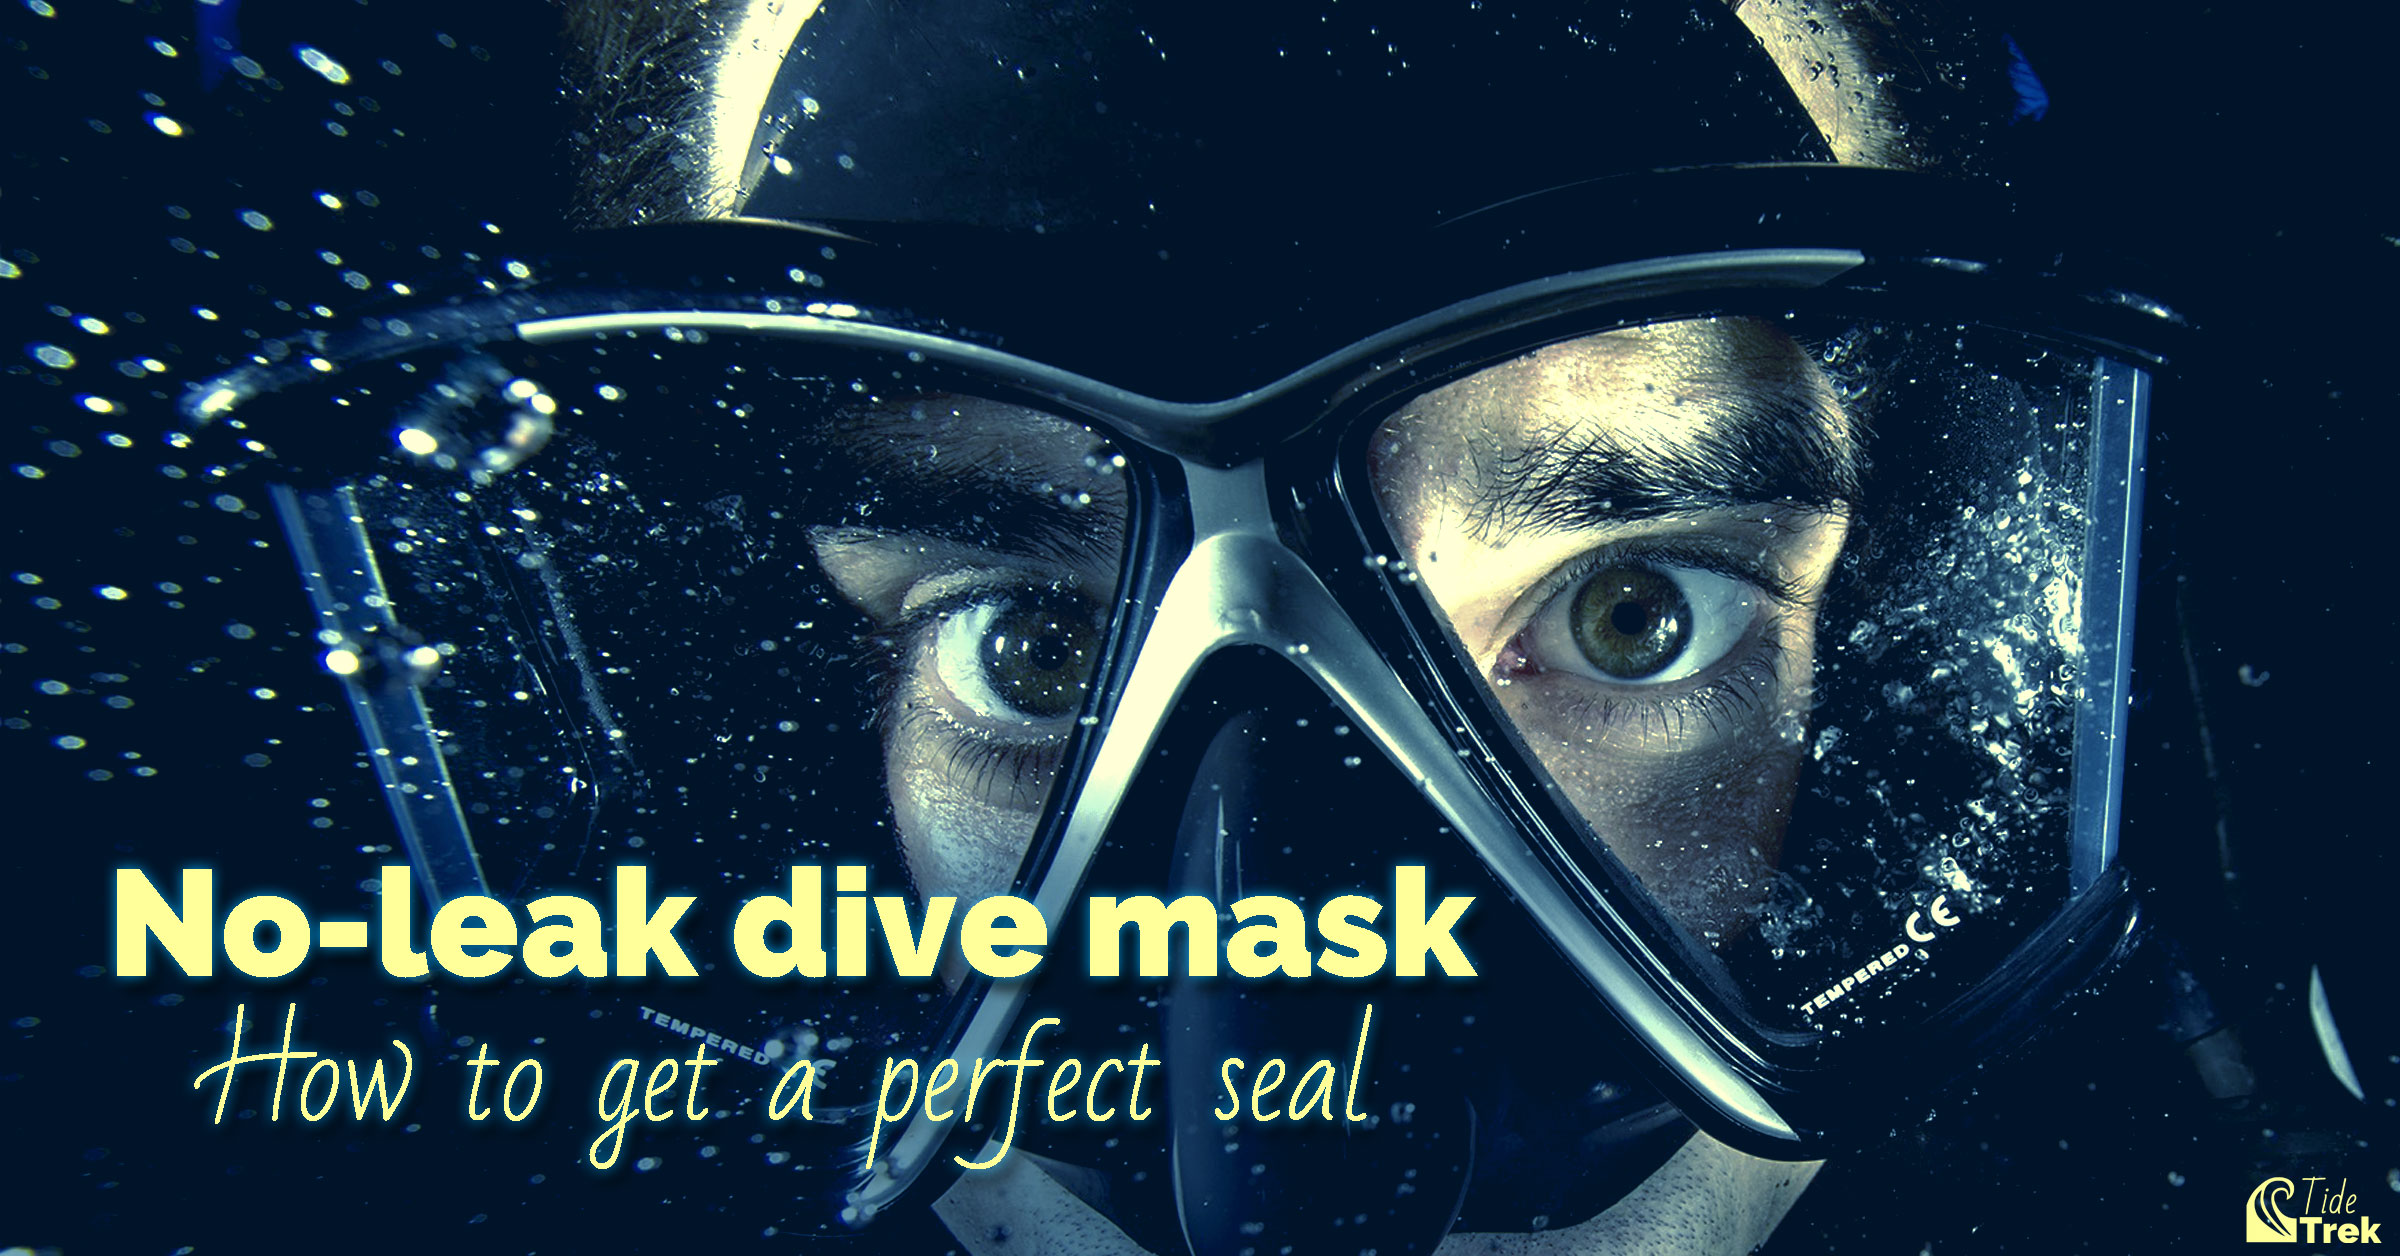 Close up view of a diver's face wearing a mask with no leaks